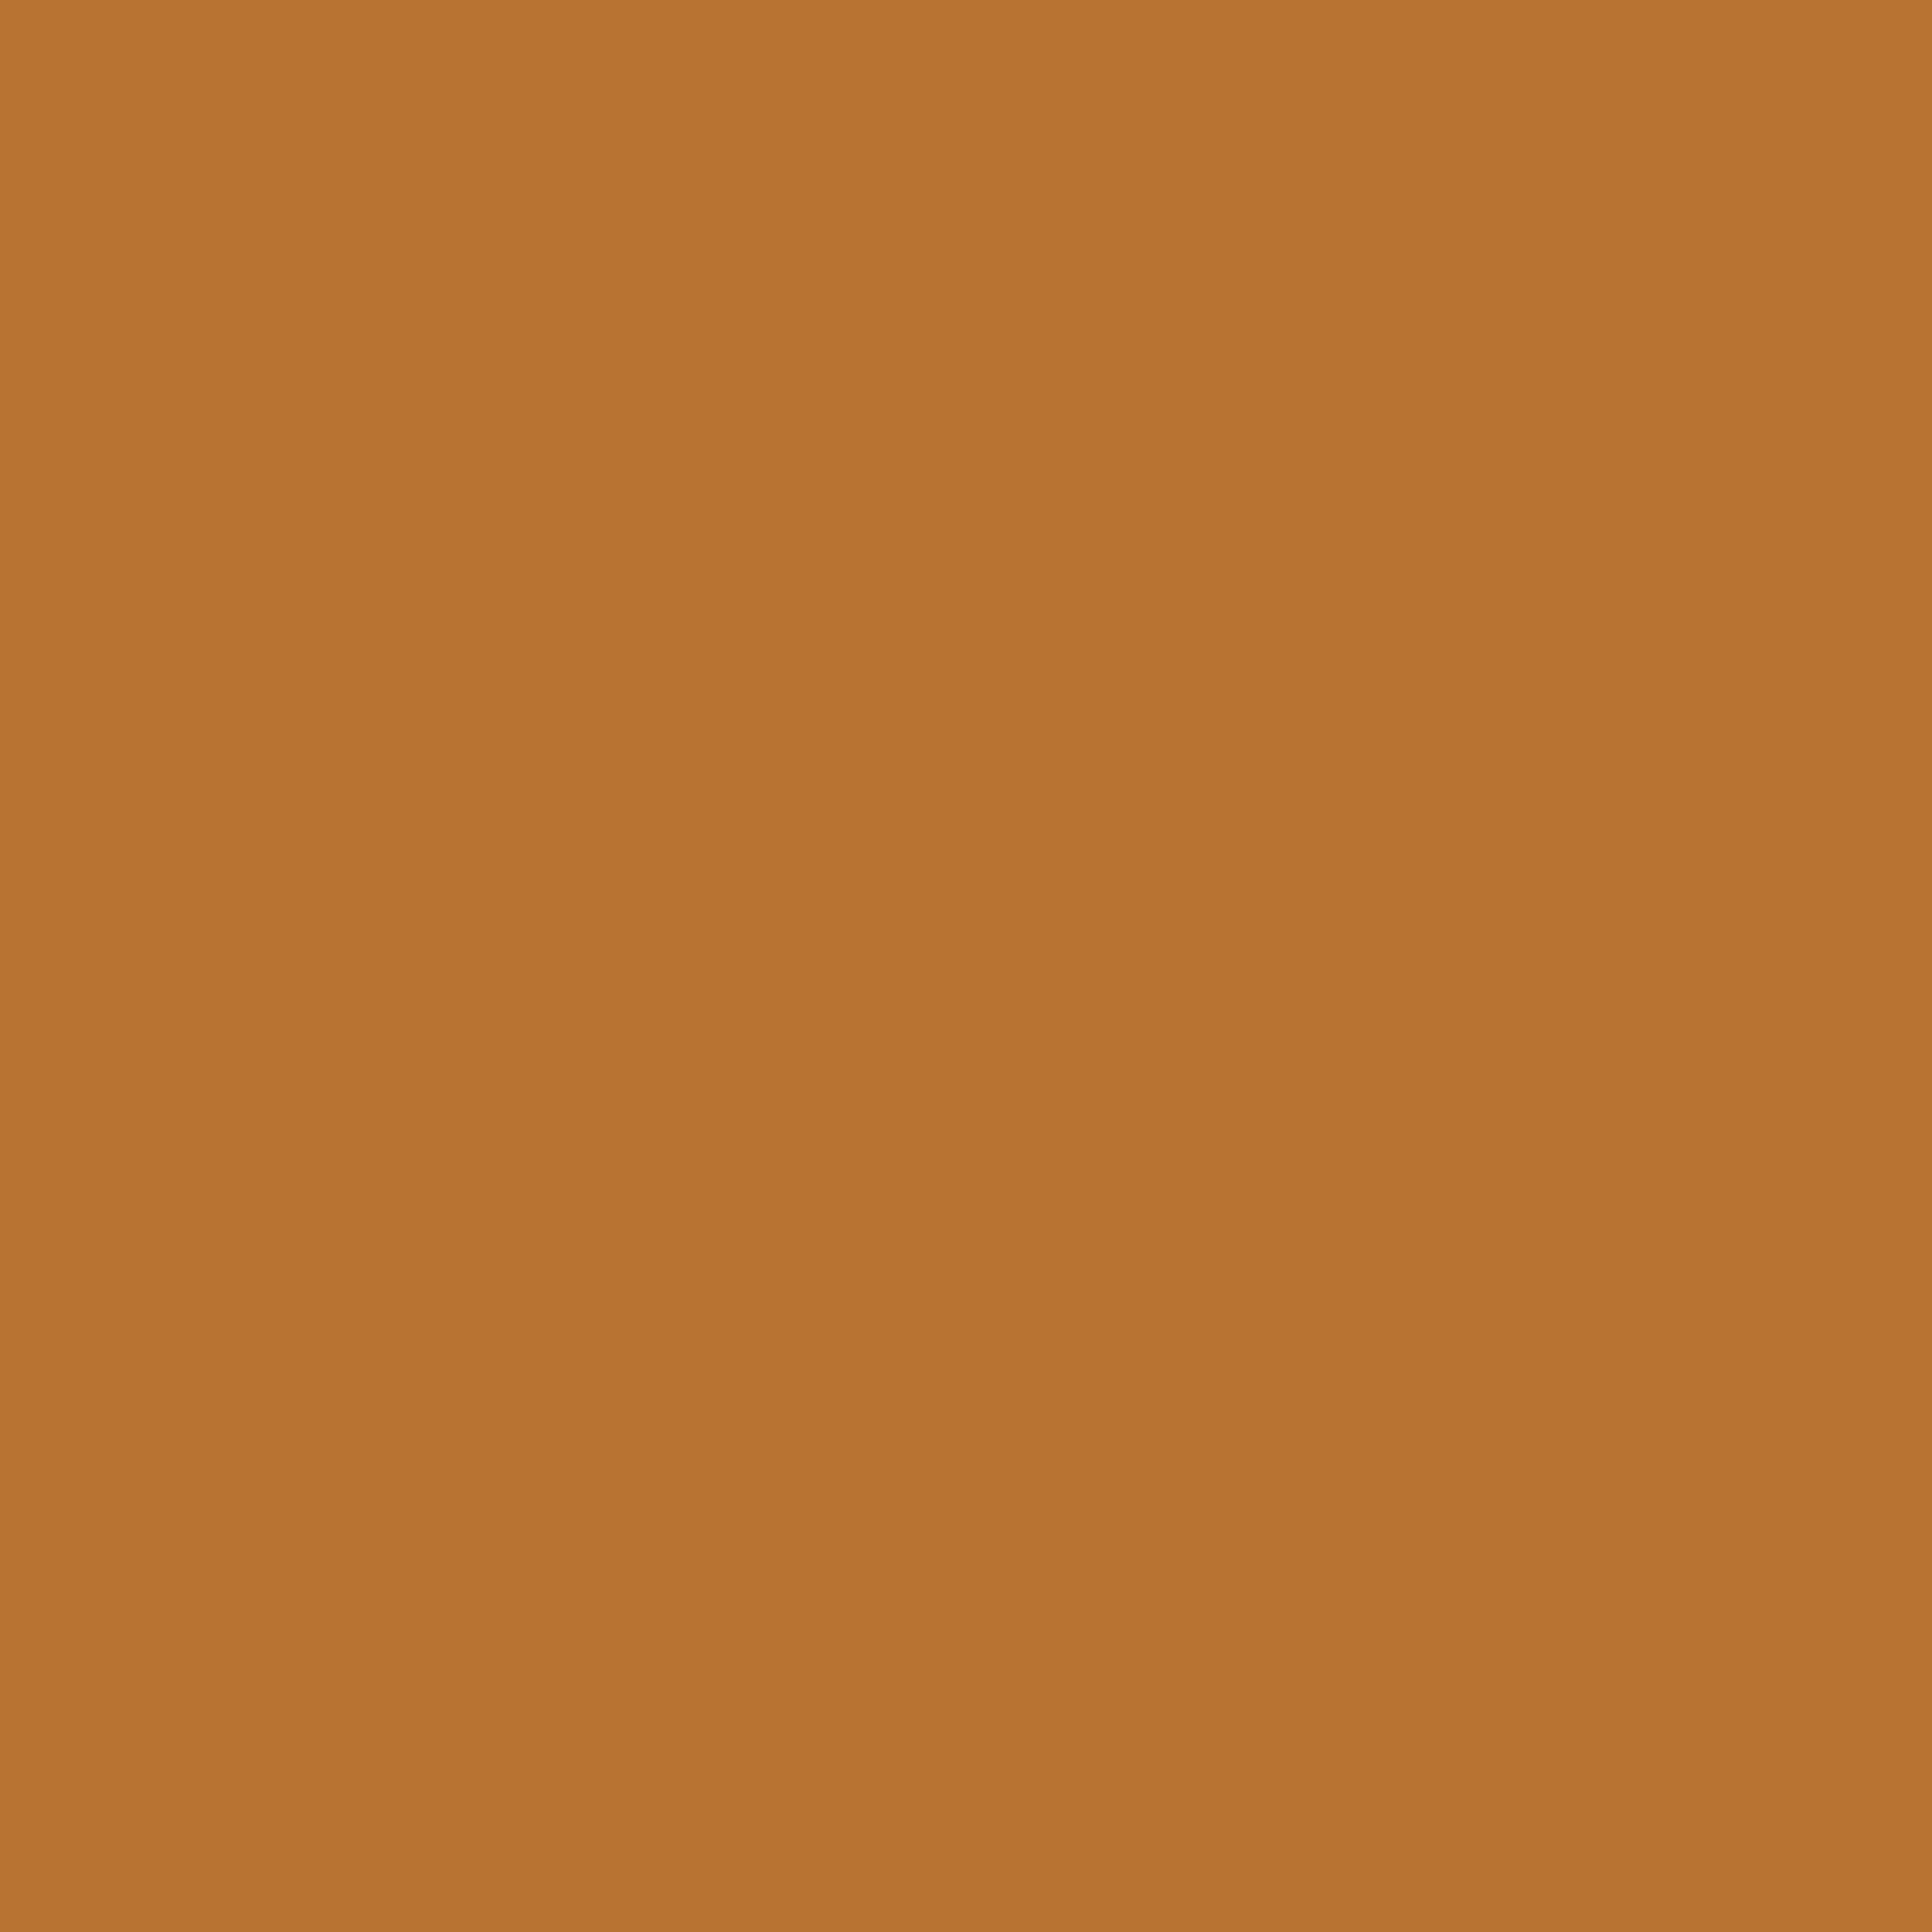 3600x3600 Copper Solid Color Background